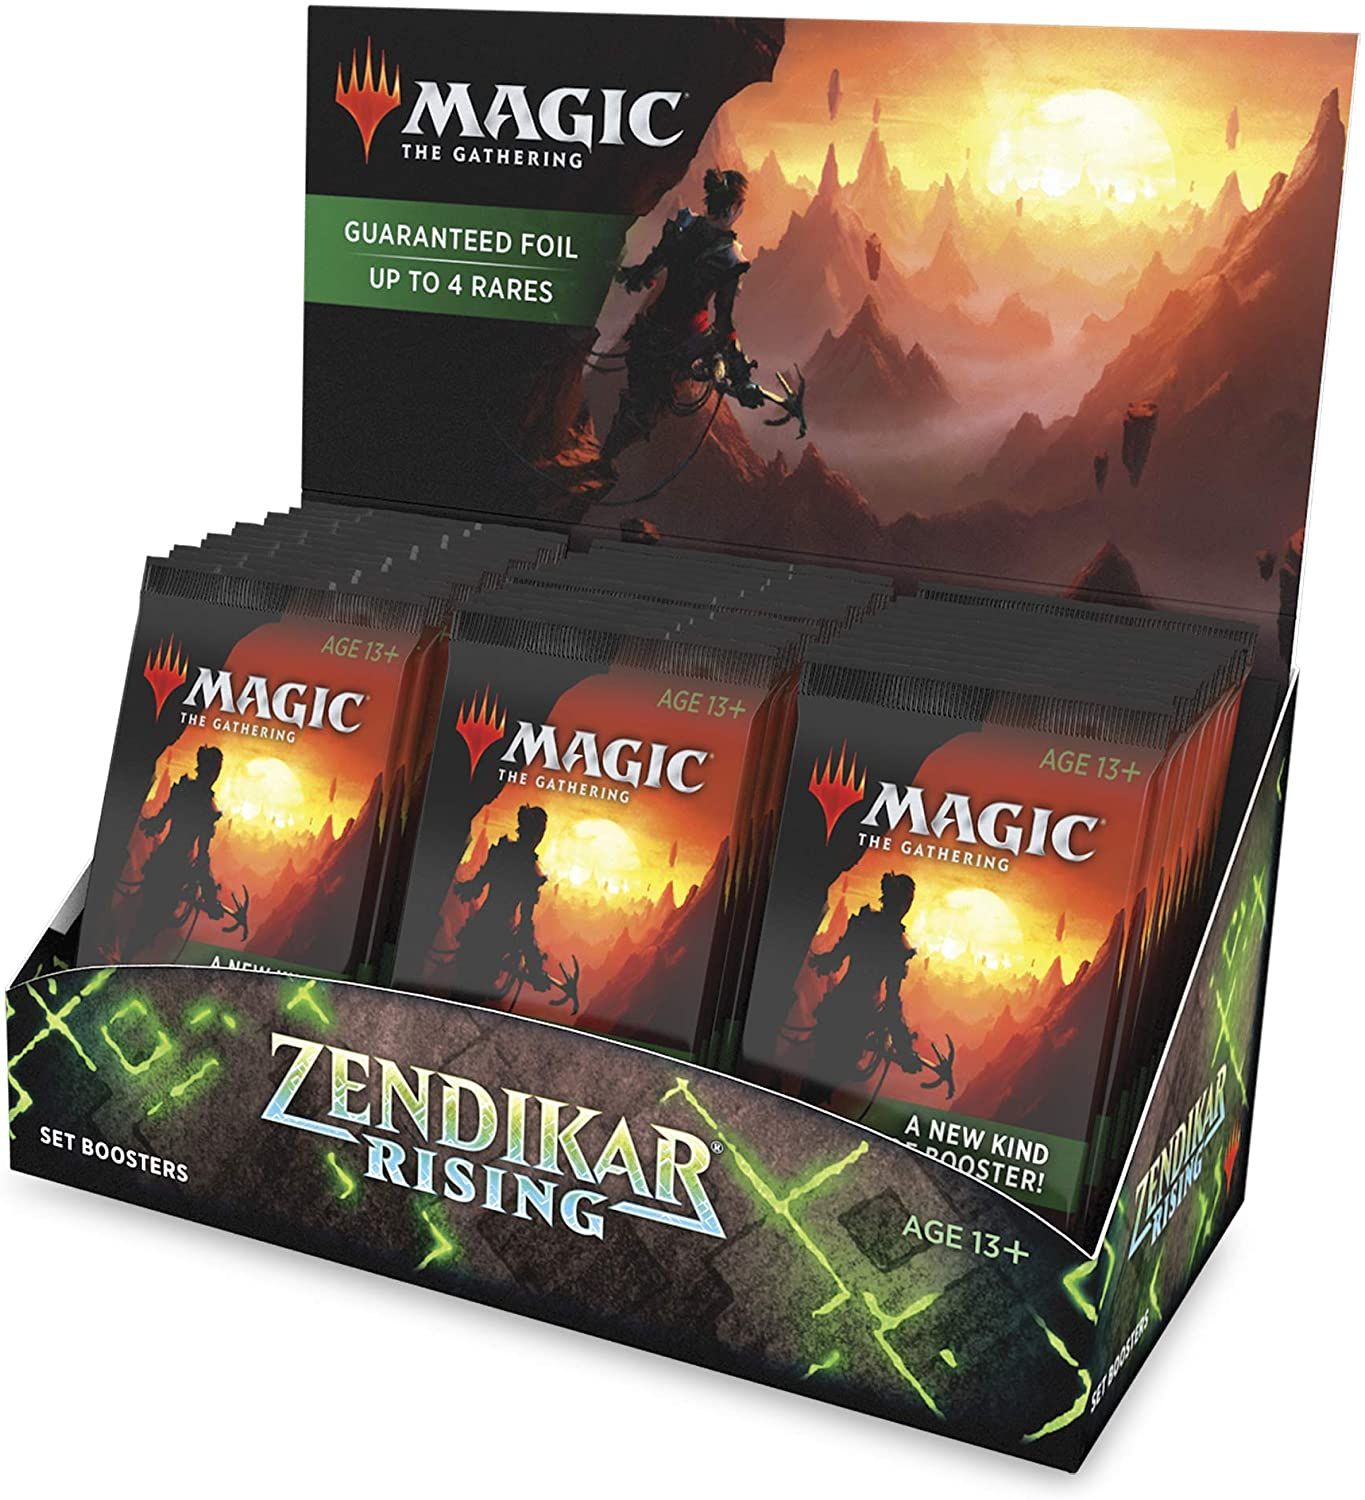 Magic: The Gathering Zendikar Rising Set Booster Box | 30 Packs (360 Cards) + 1 Box Topper | Foil in Every Pack